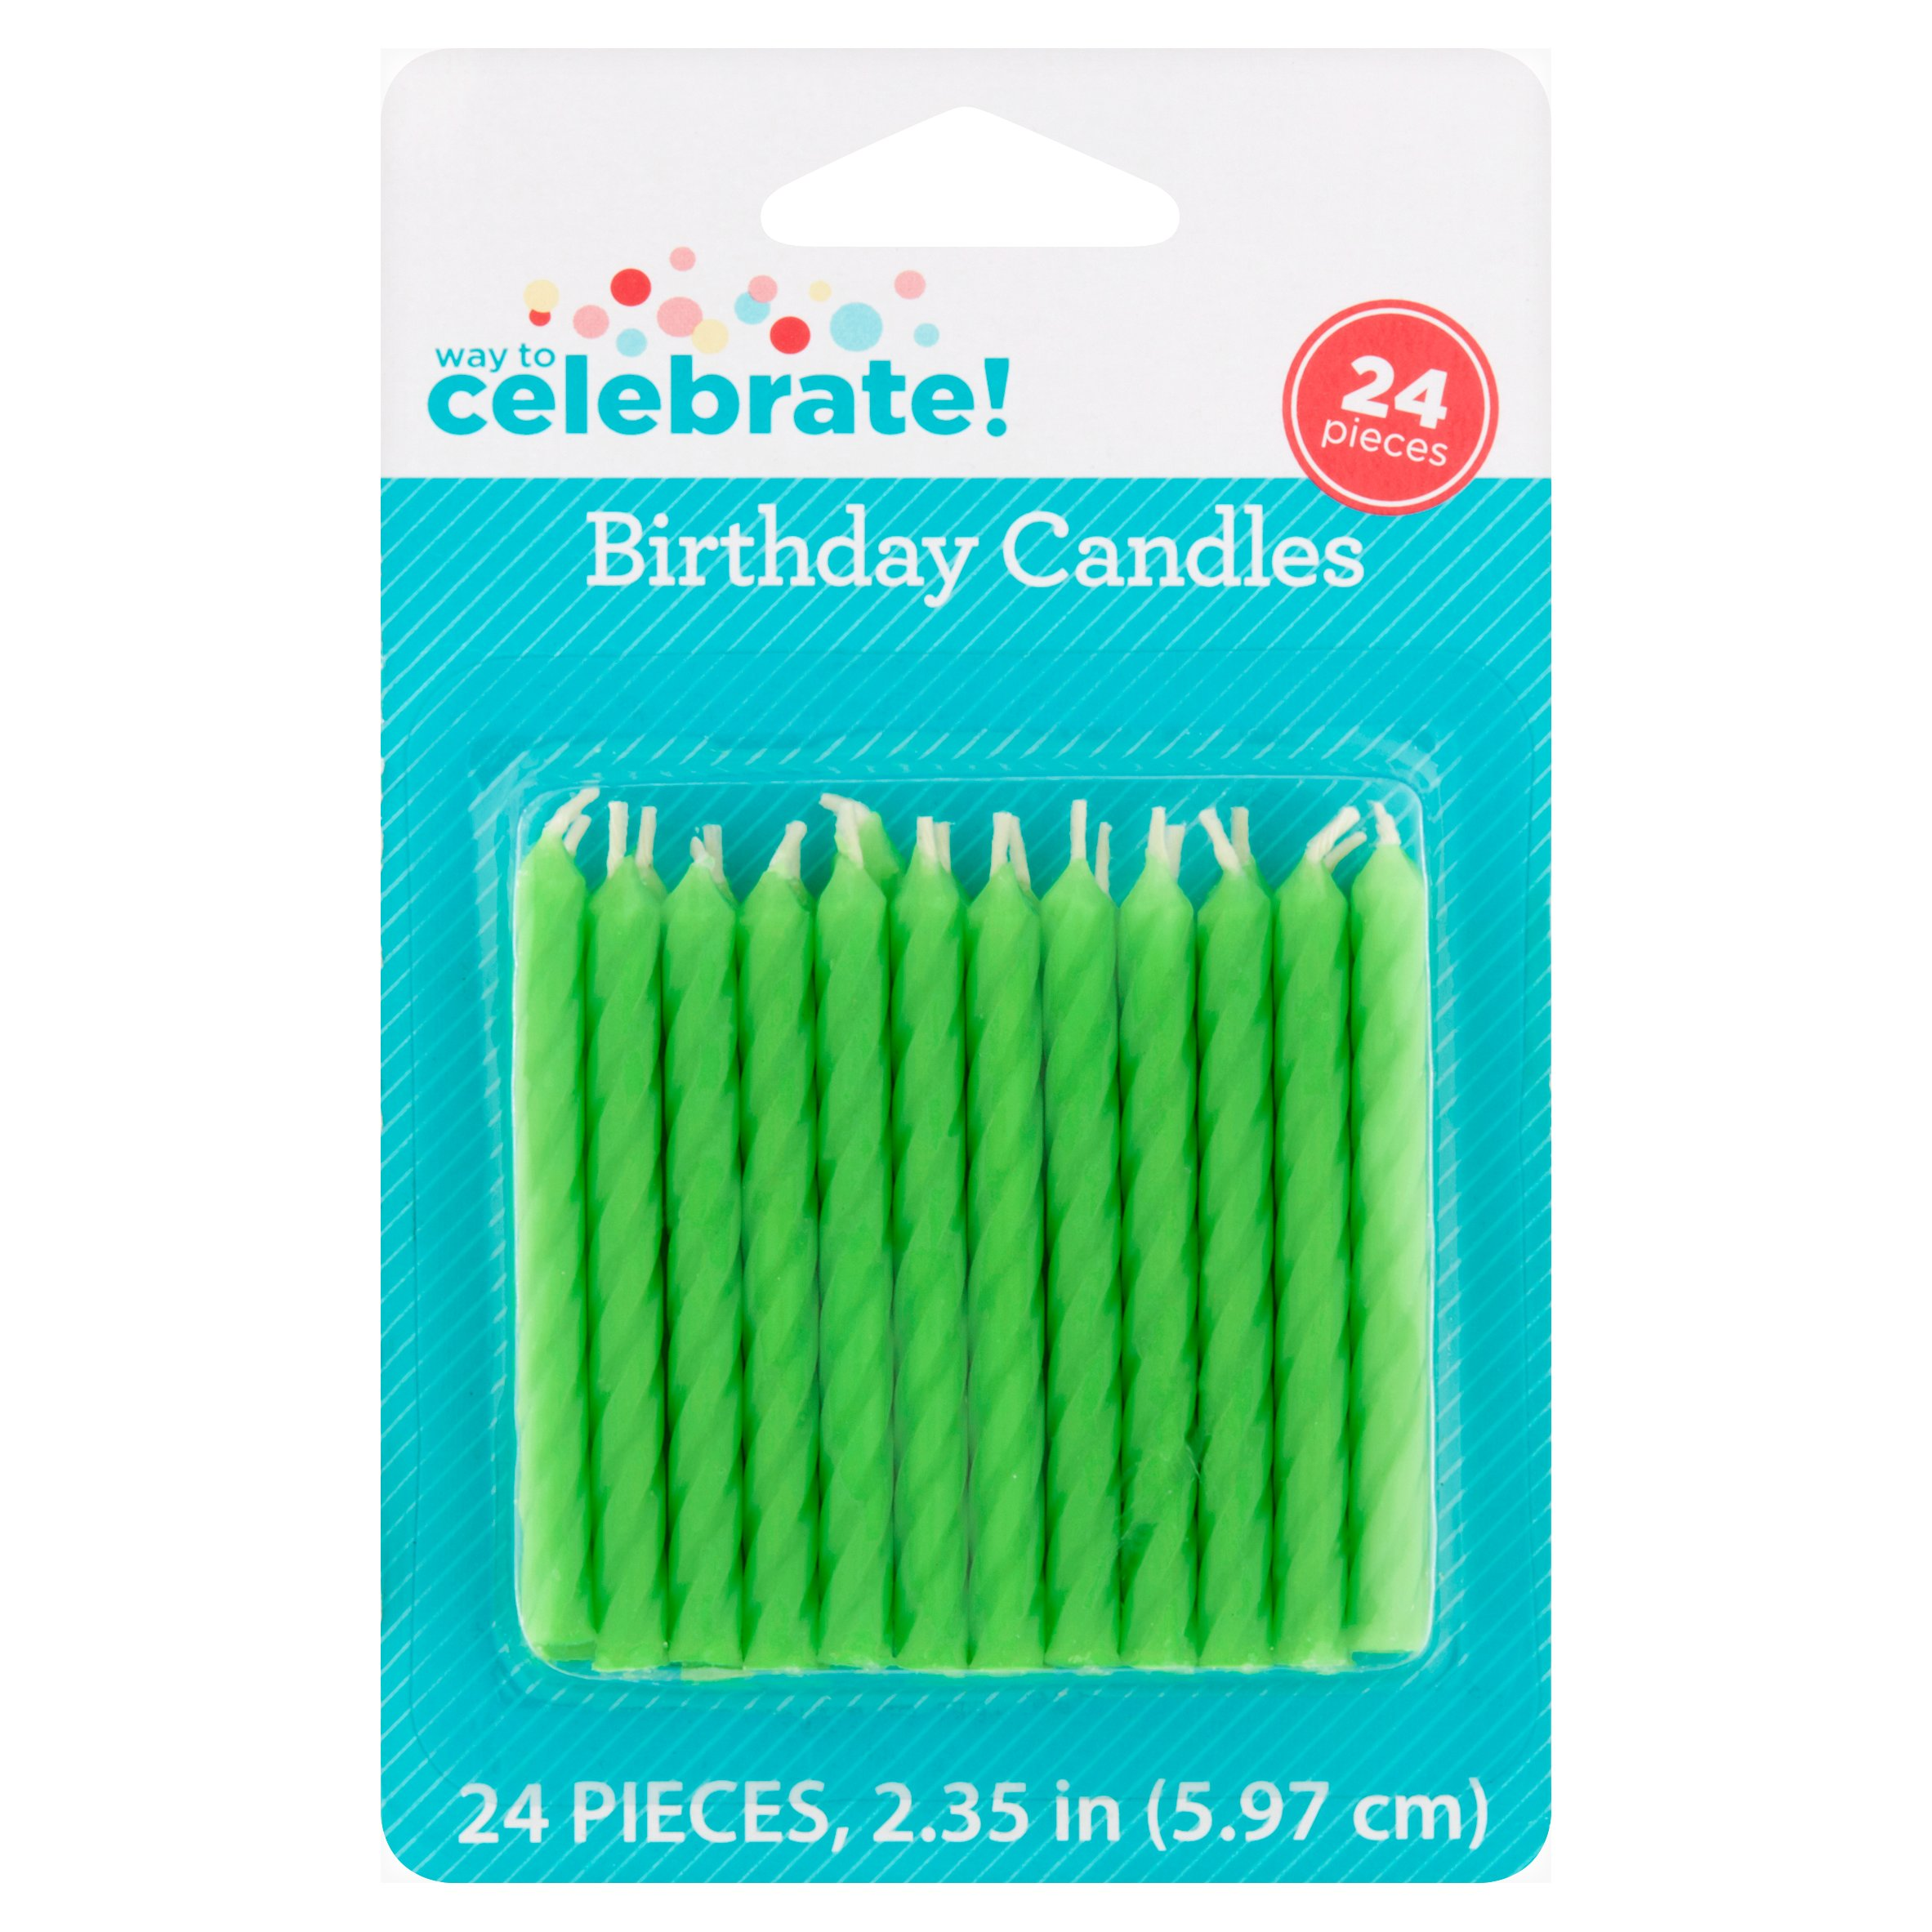 (4 Pack) Way to Celebrate Birthday Candles, Lime Green